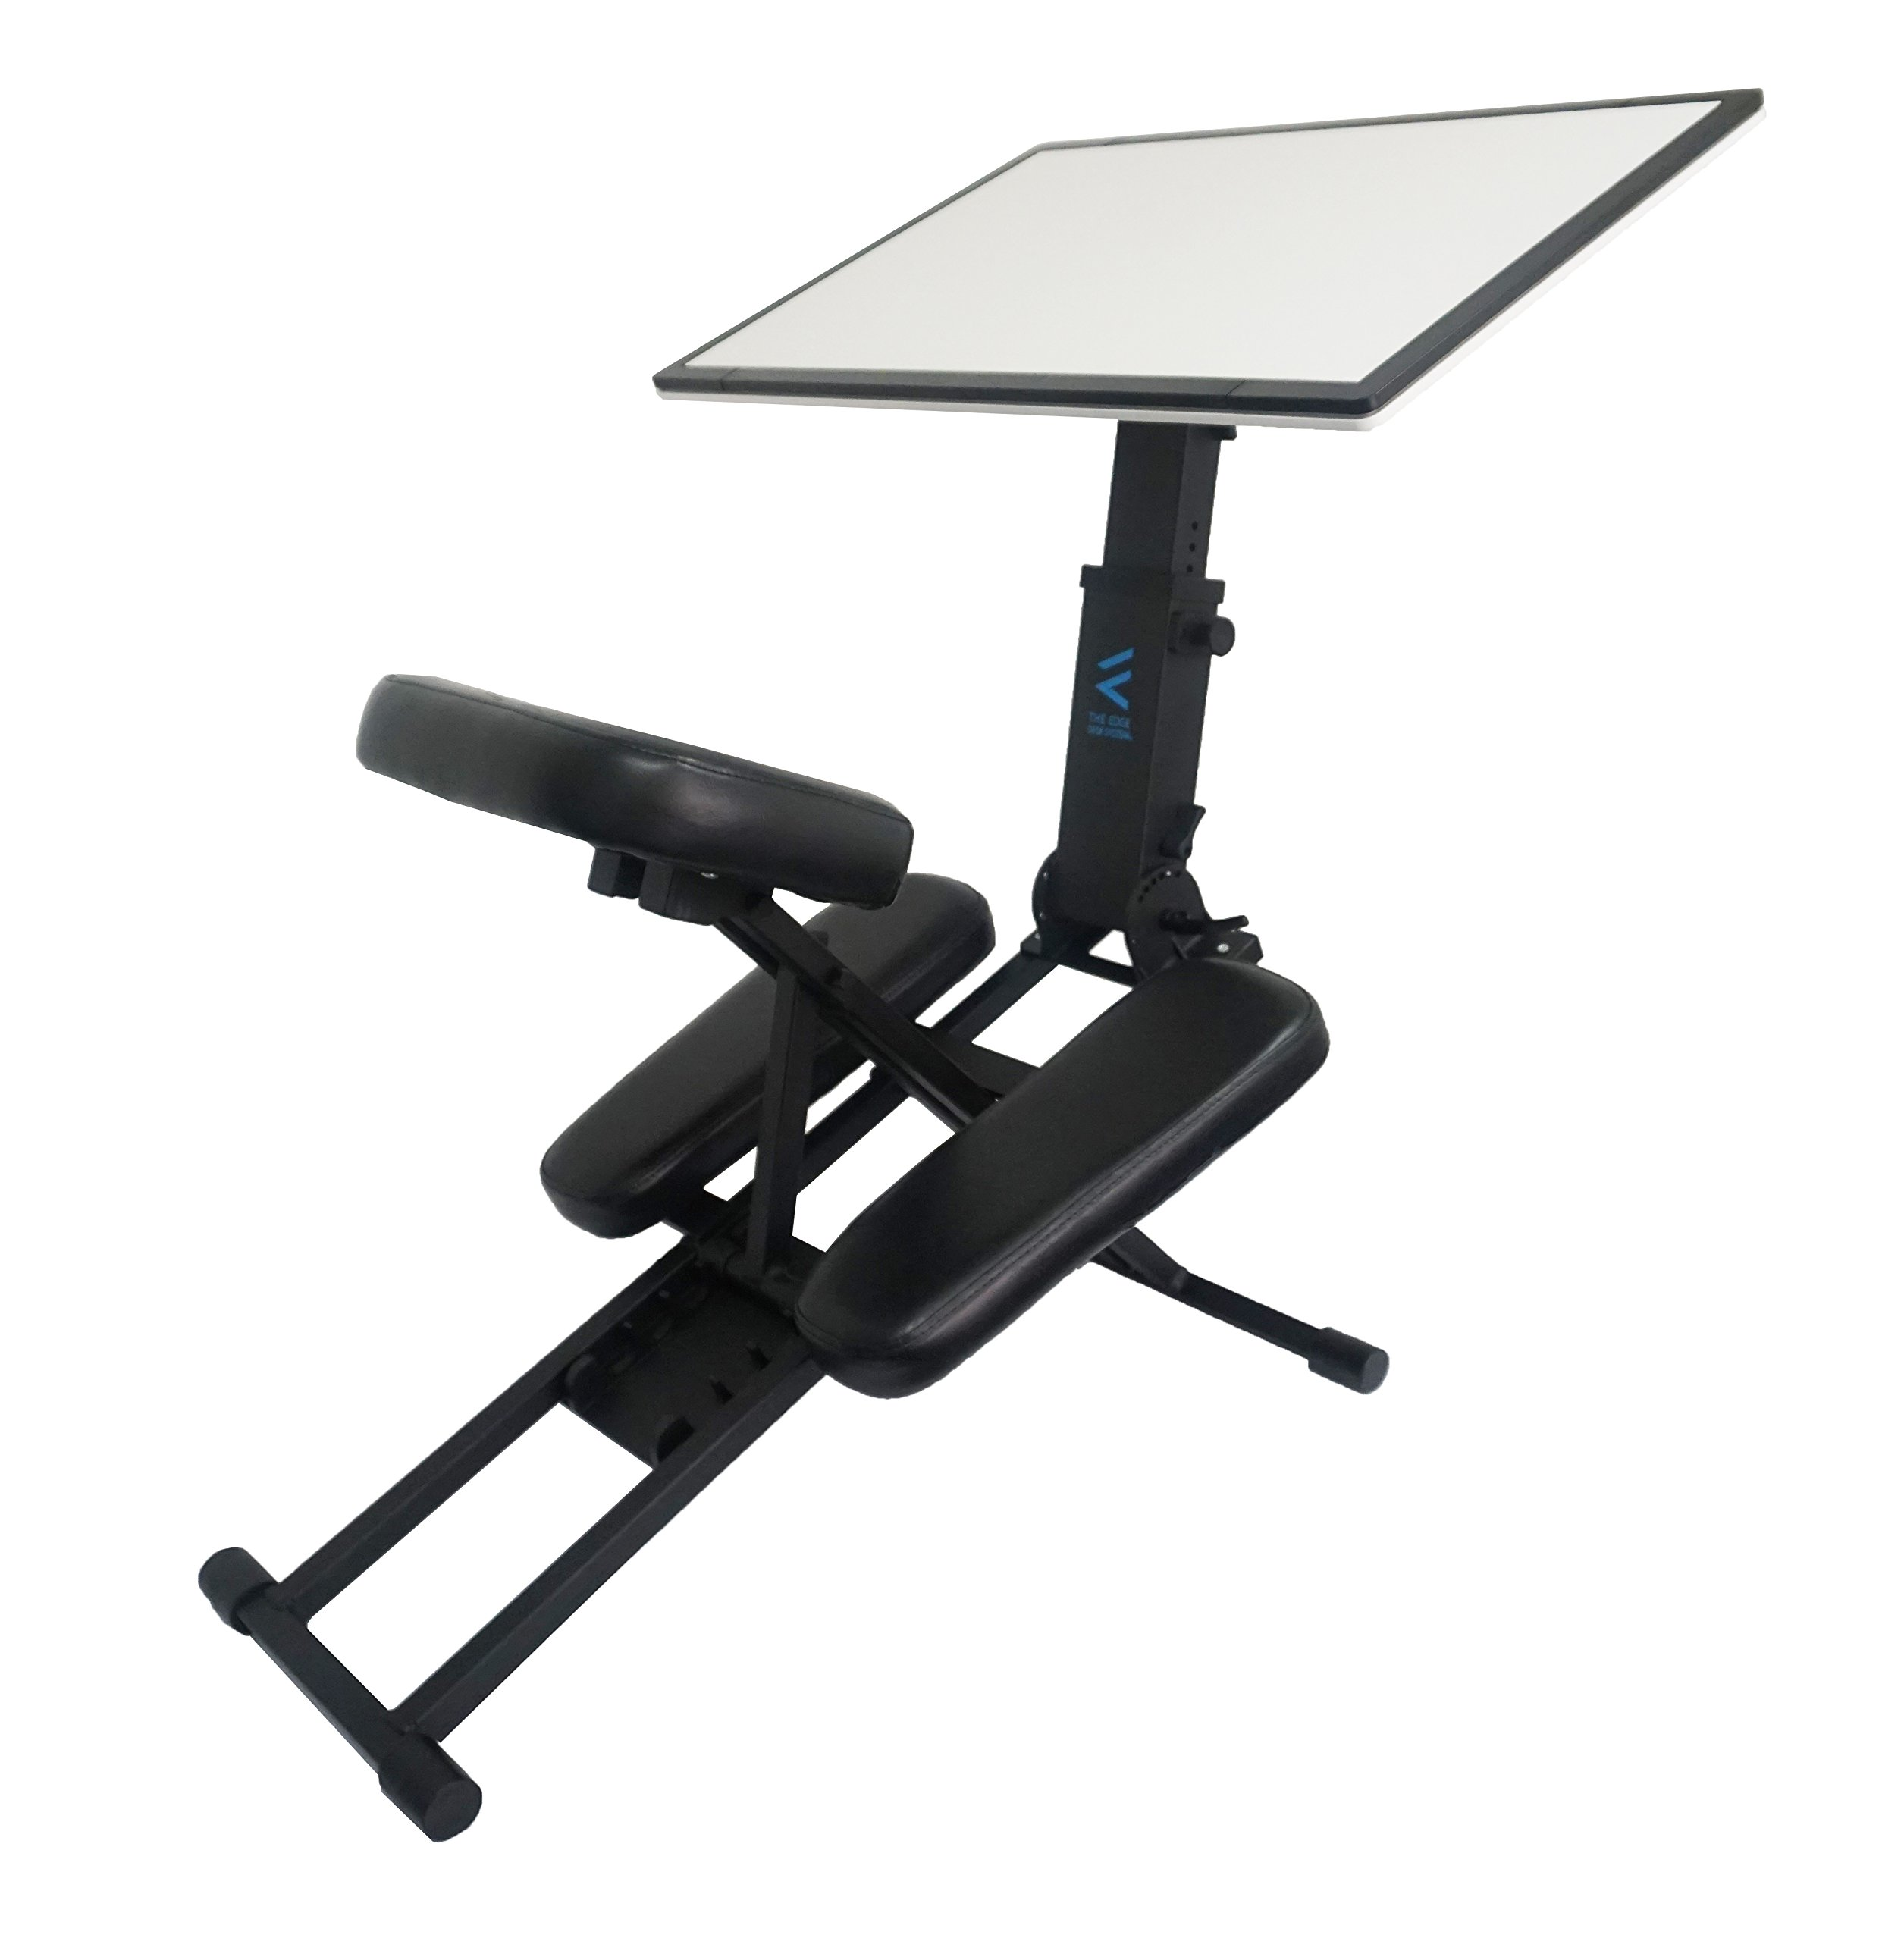 The Edge Desk Kneeling Artists Chair / Desk Combination With Adjustable Drafting Table. The Portable Design is Ideal for Use as a Mobile Art Easel to Maximize Productivity Indoors and Outdoors